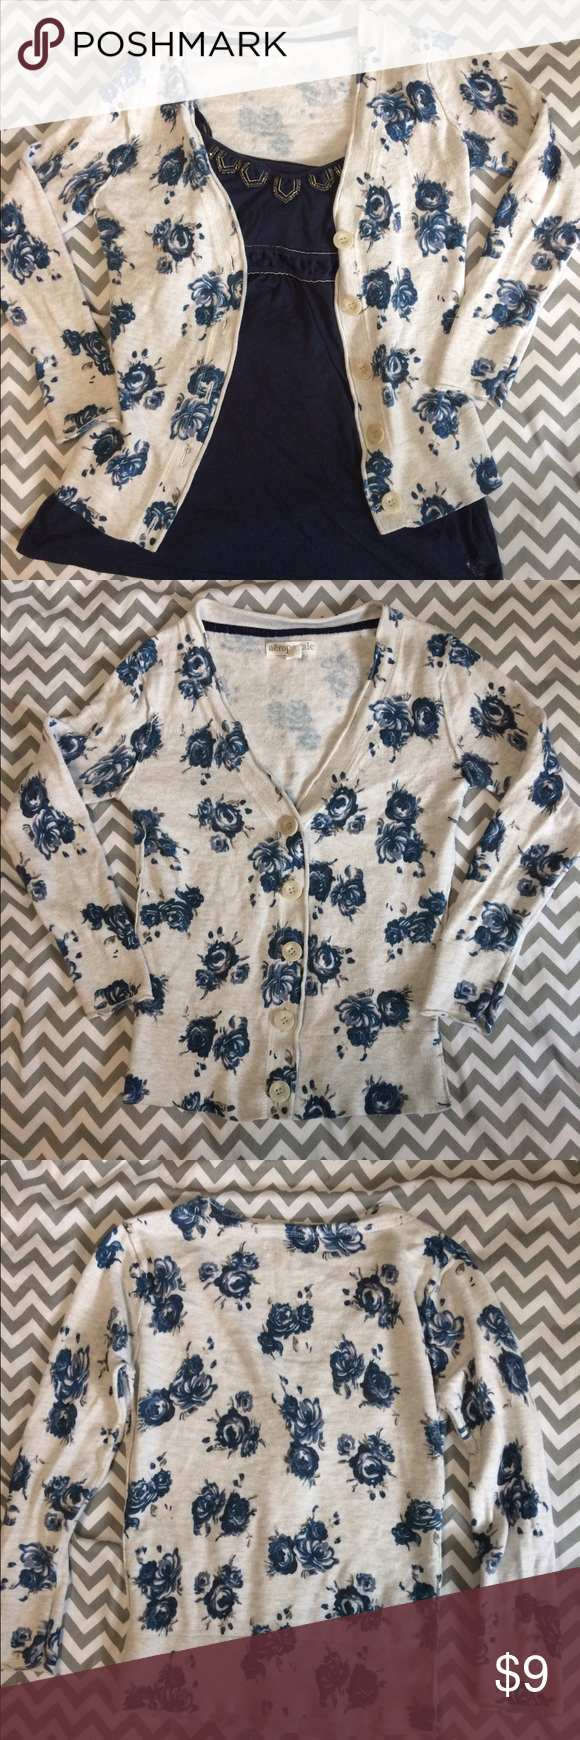 Aeropostale Cardigan This floral cardigan is a perfect addition to your spring wardrobe. In great condition with a button down front and quarter length sleeves. Aeropostale Sweaters Cardigans